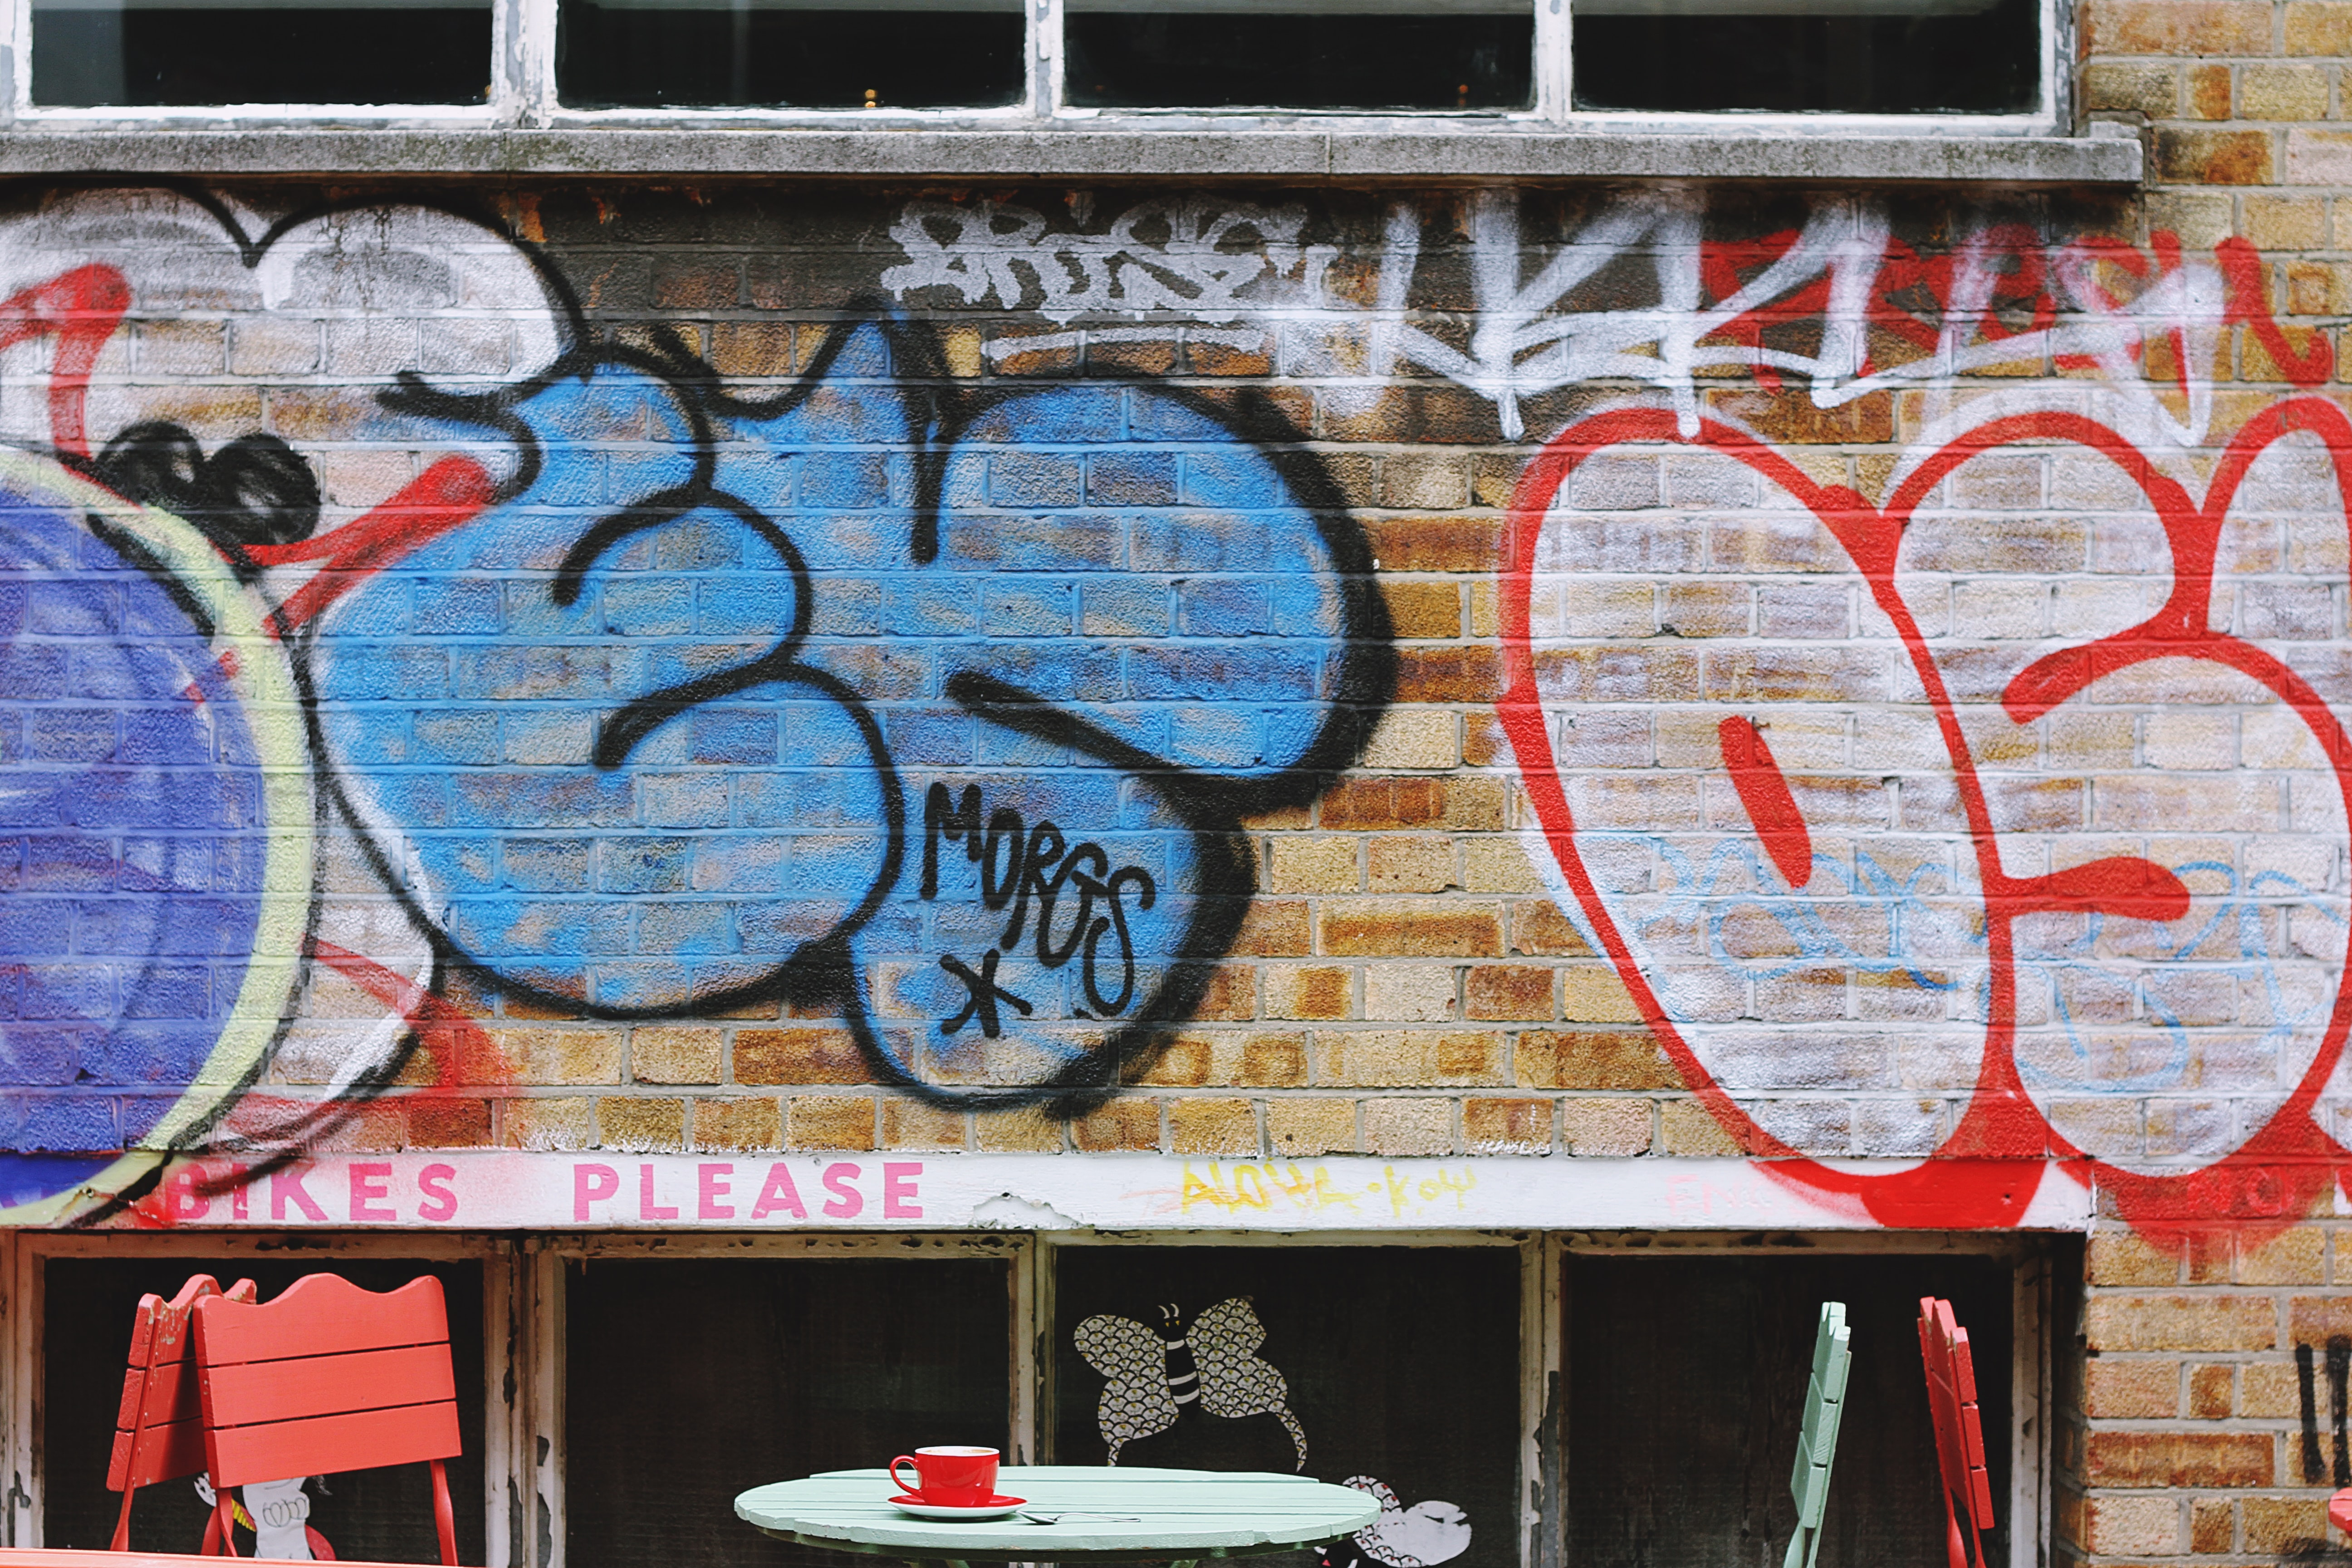 Grunge graffiti on brick wall behind colorful tables and chairs in Shoreditch